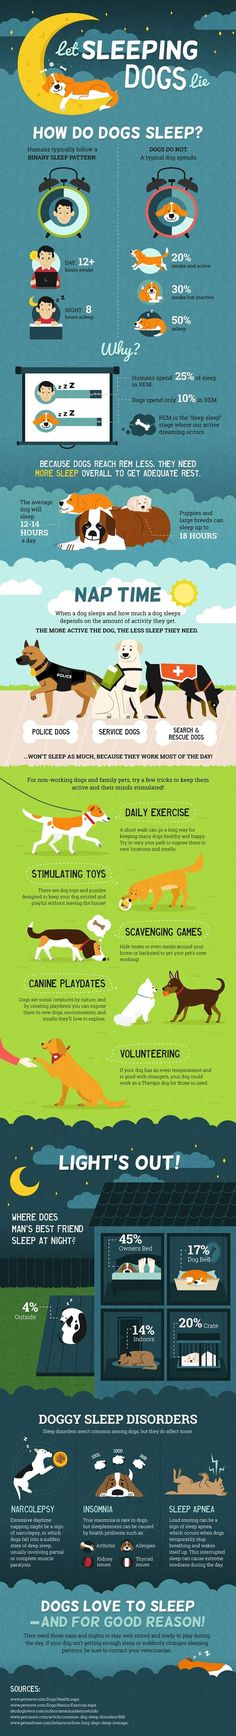 Dog Infographic: Let Sleeping Dogs Lie